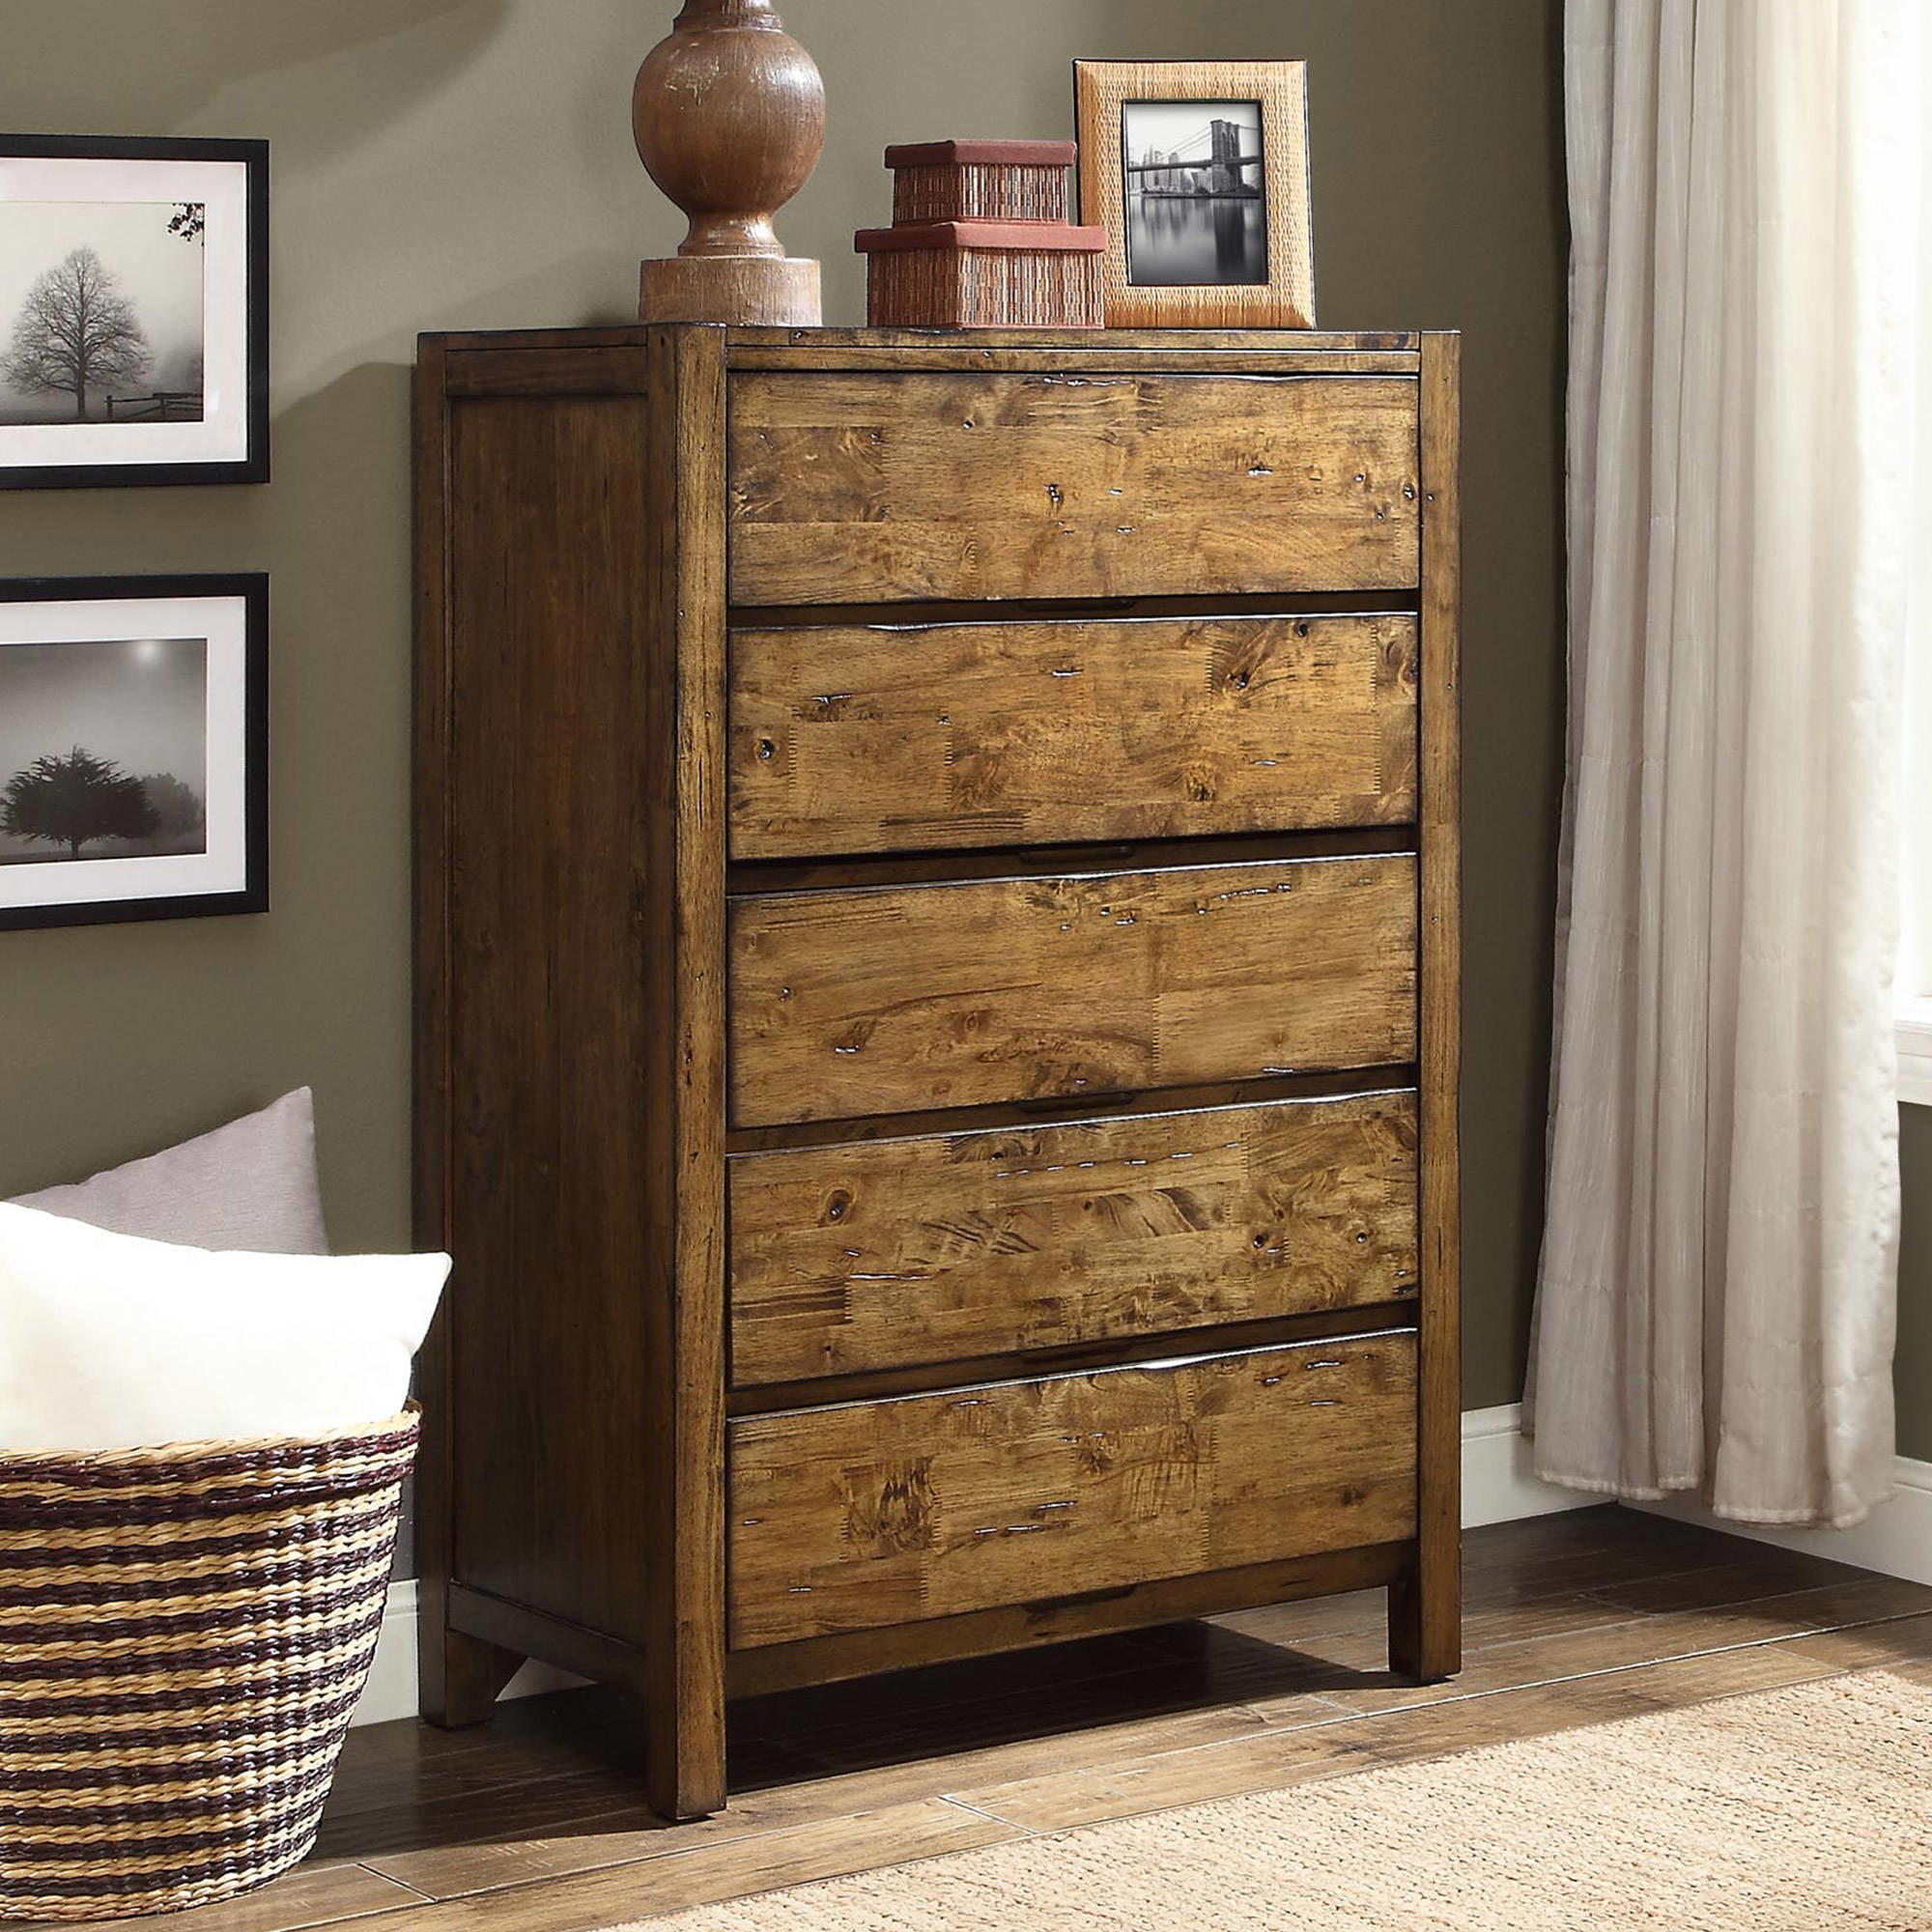 A five-drawer dresser in a weathered brown stain